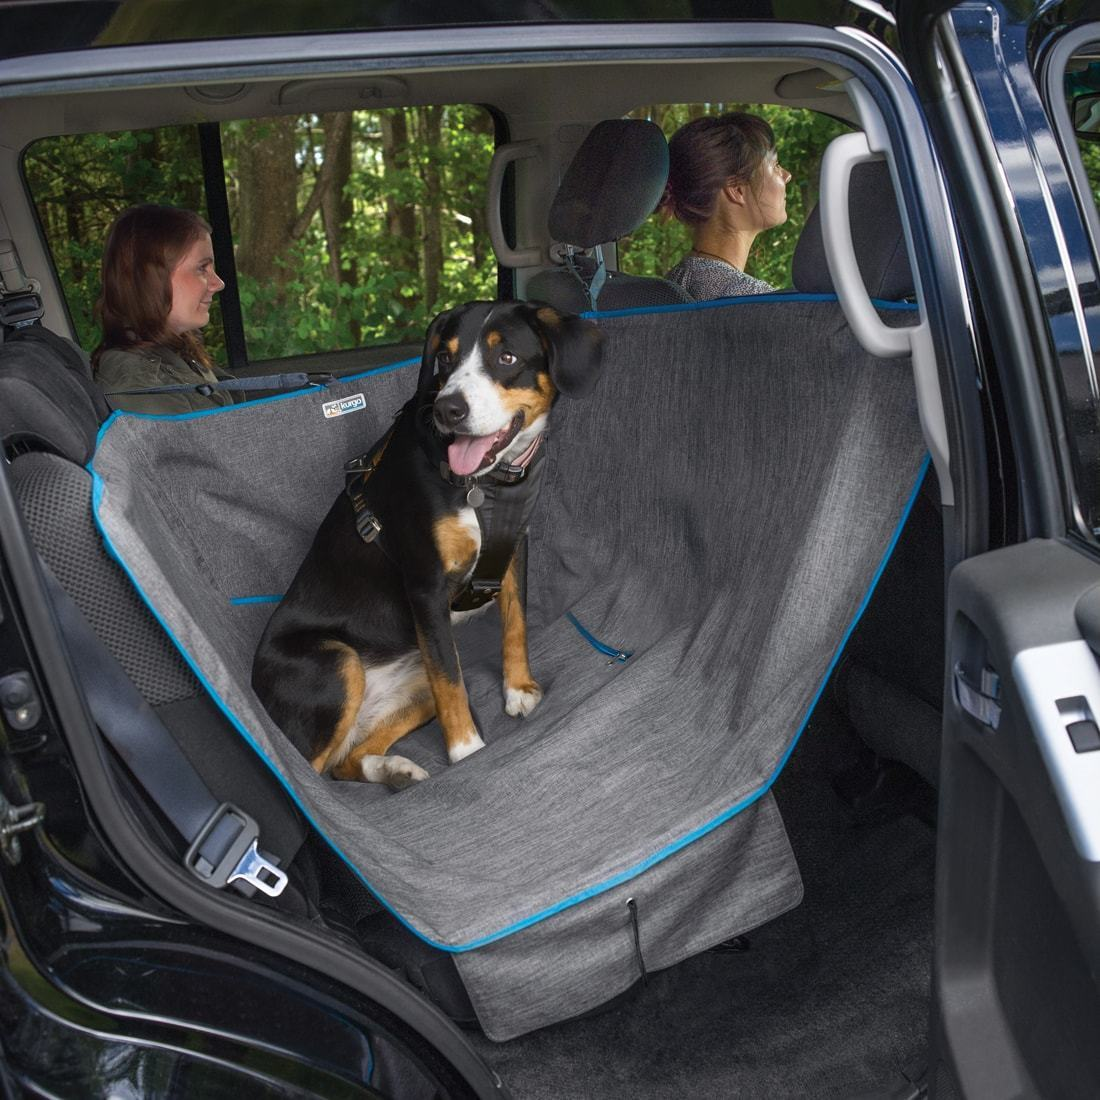 hammock car protector cover shop protective dog luxurious crop seat luxury product